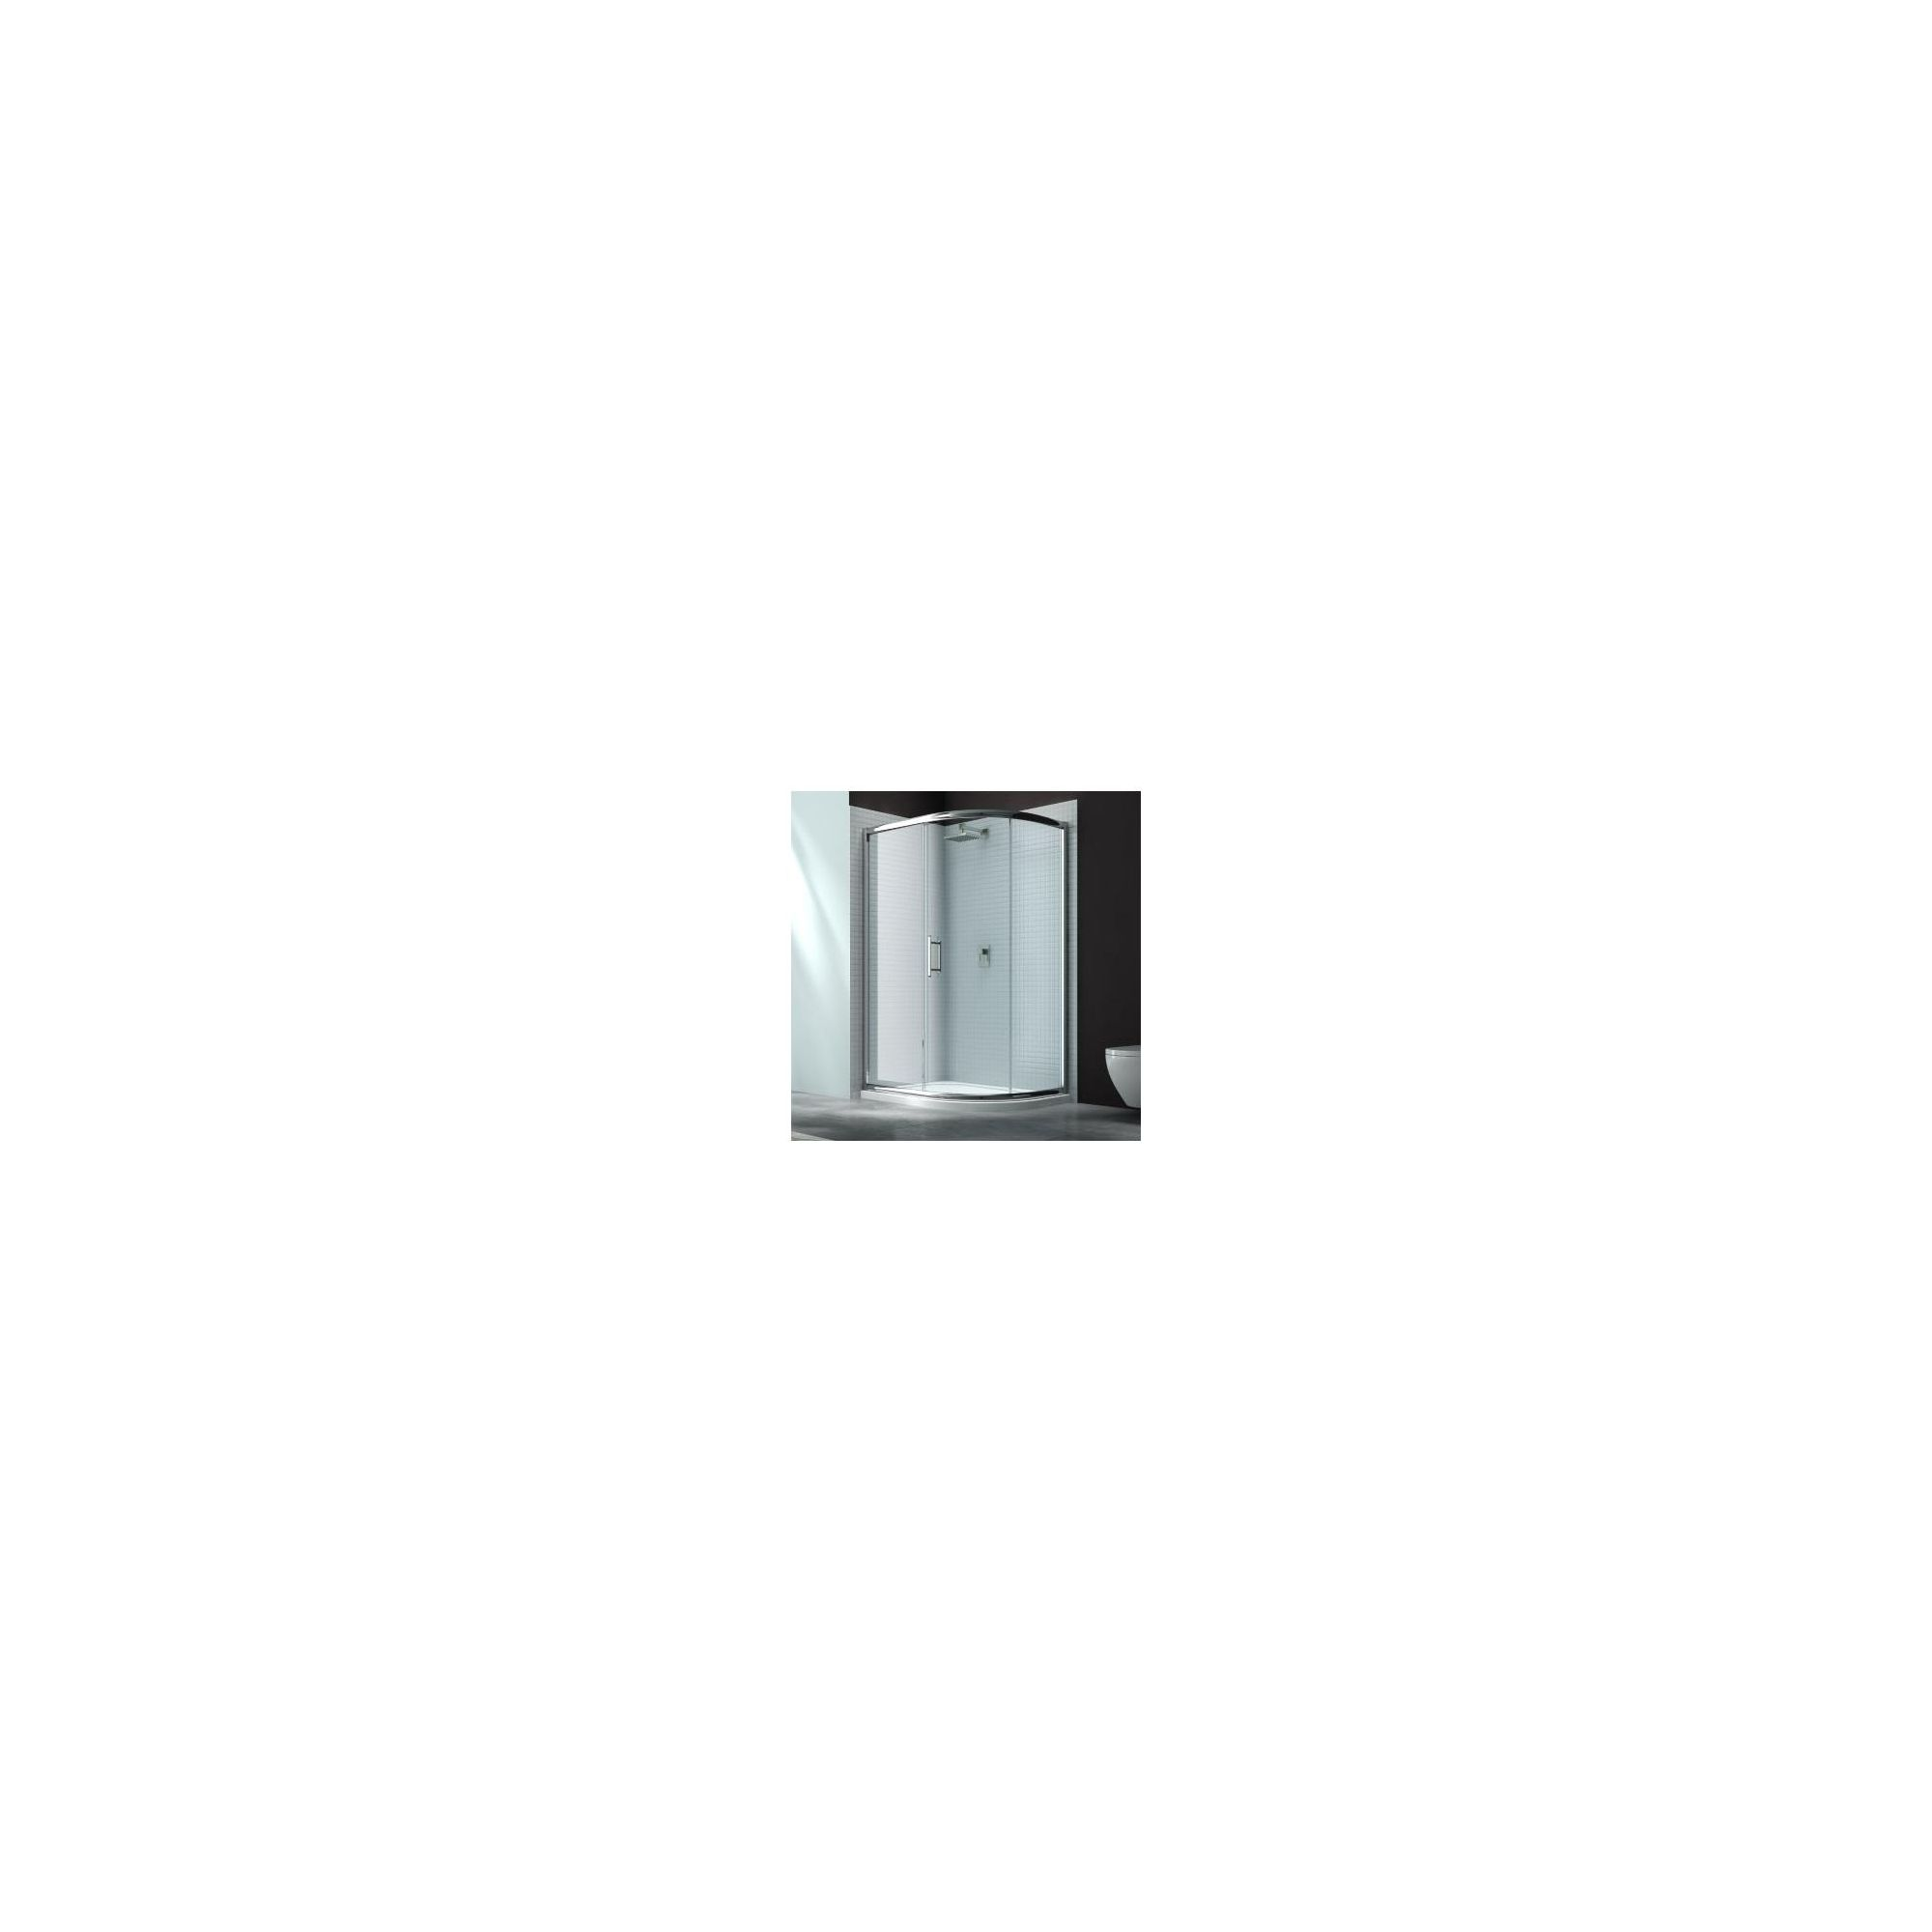 Merlyn Series 6 Offset Quadrant Shower Door, 1200mm x 800mm, Chrome Frame, 6mm Glass at Tesco Direct